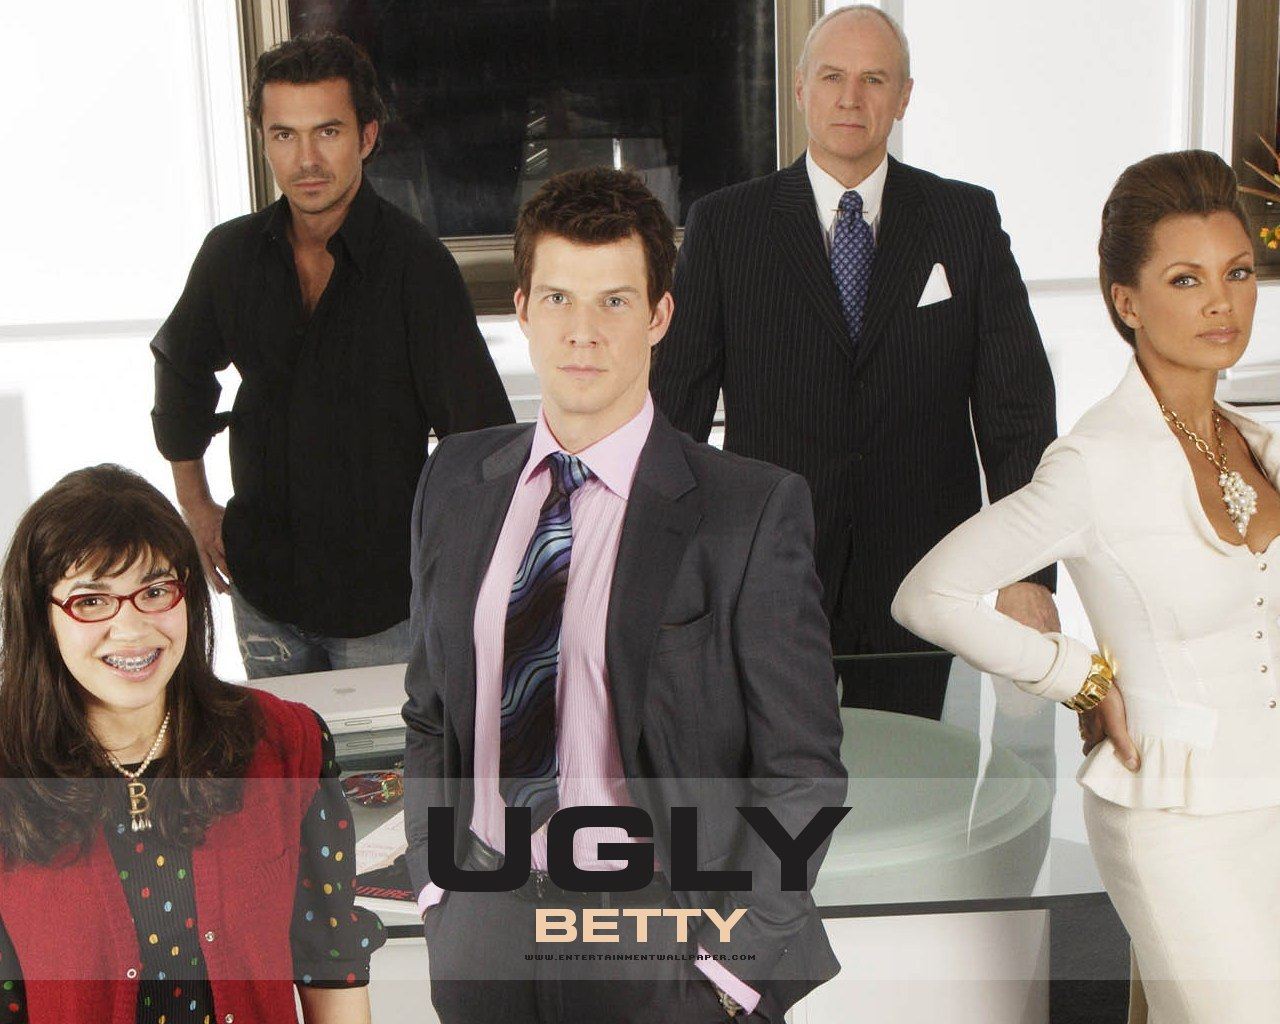 http://images.fanpop.com/images/image_uploads/Ugly-betty-Cast-ugly-betty-791506_1280_1024.jpg